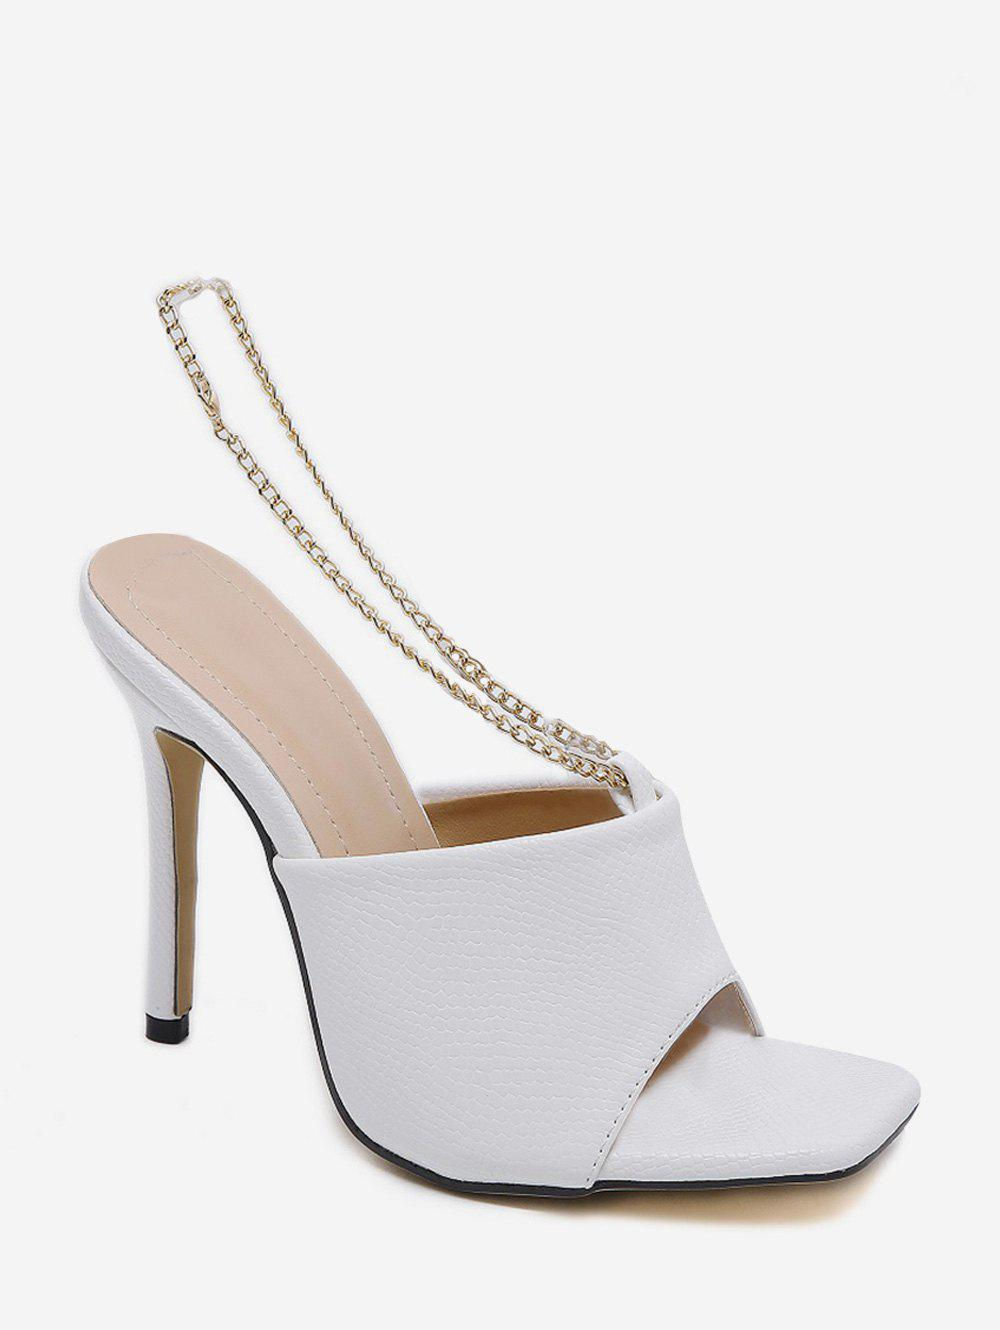 Metal Chain Leather Super High Heel Sandals - WHITE EU 39